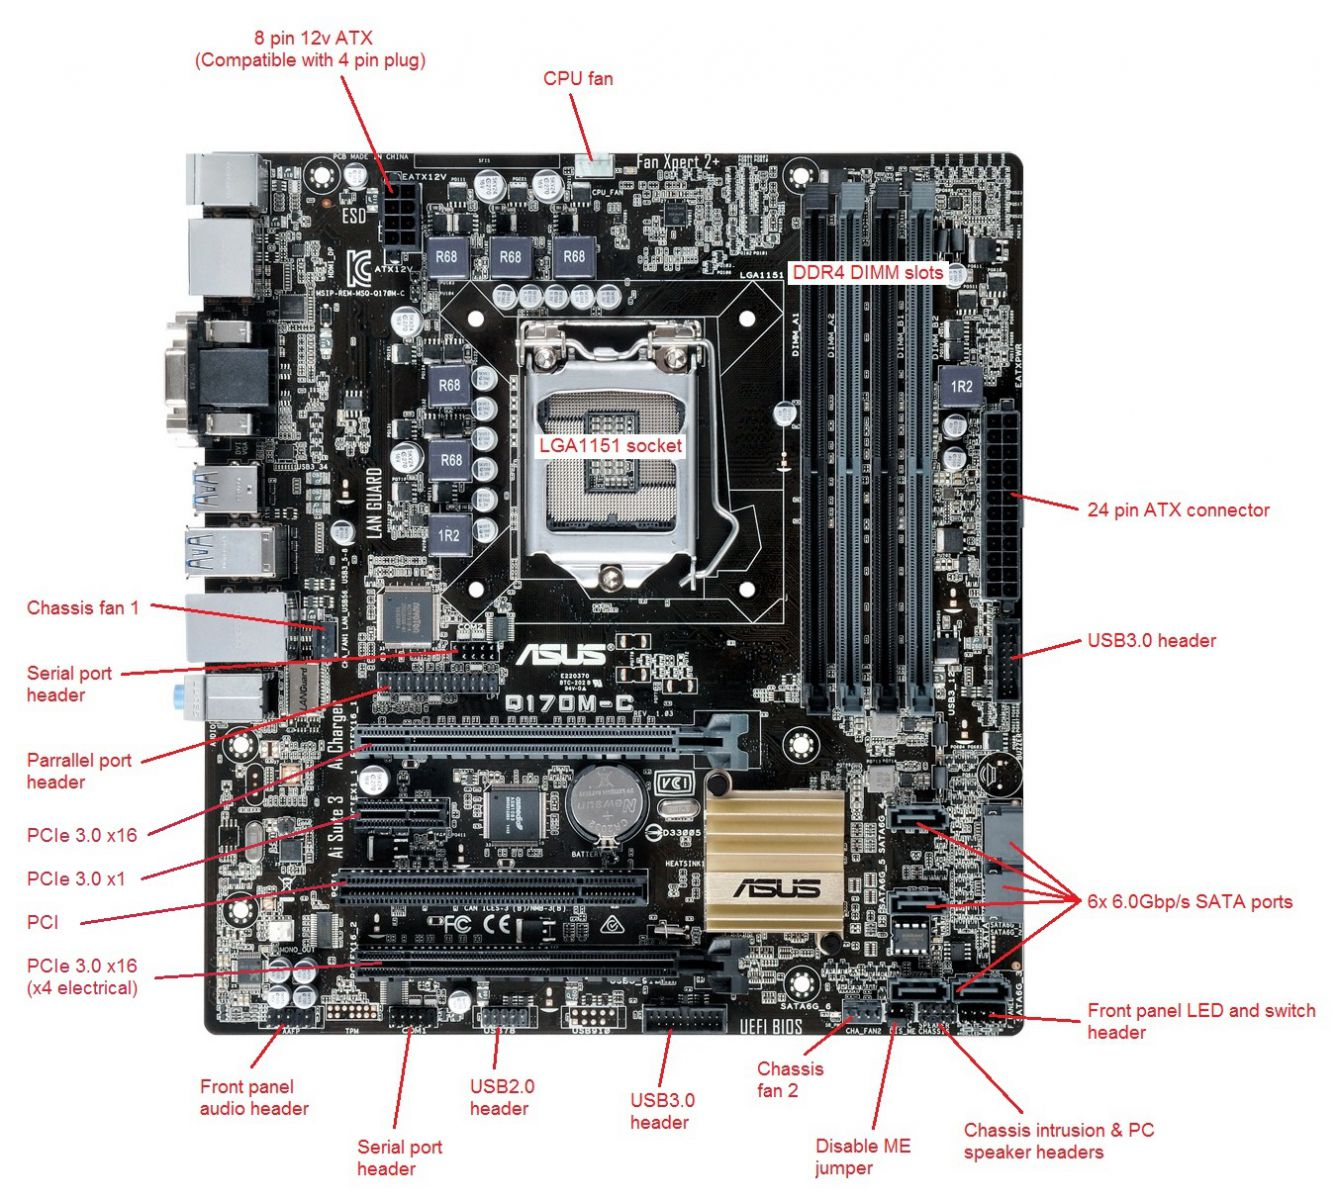 Boamot-482 - Stone    Asus Q170m-c - Motherboard Specification  Layout And Manual